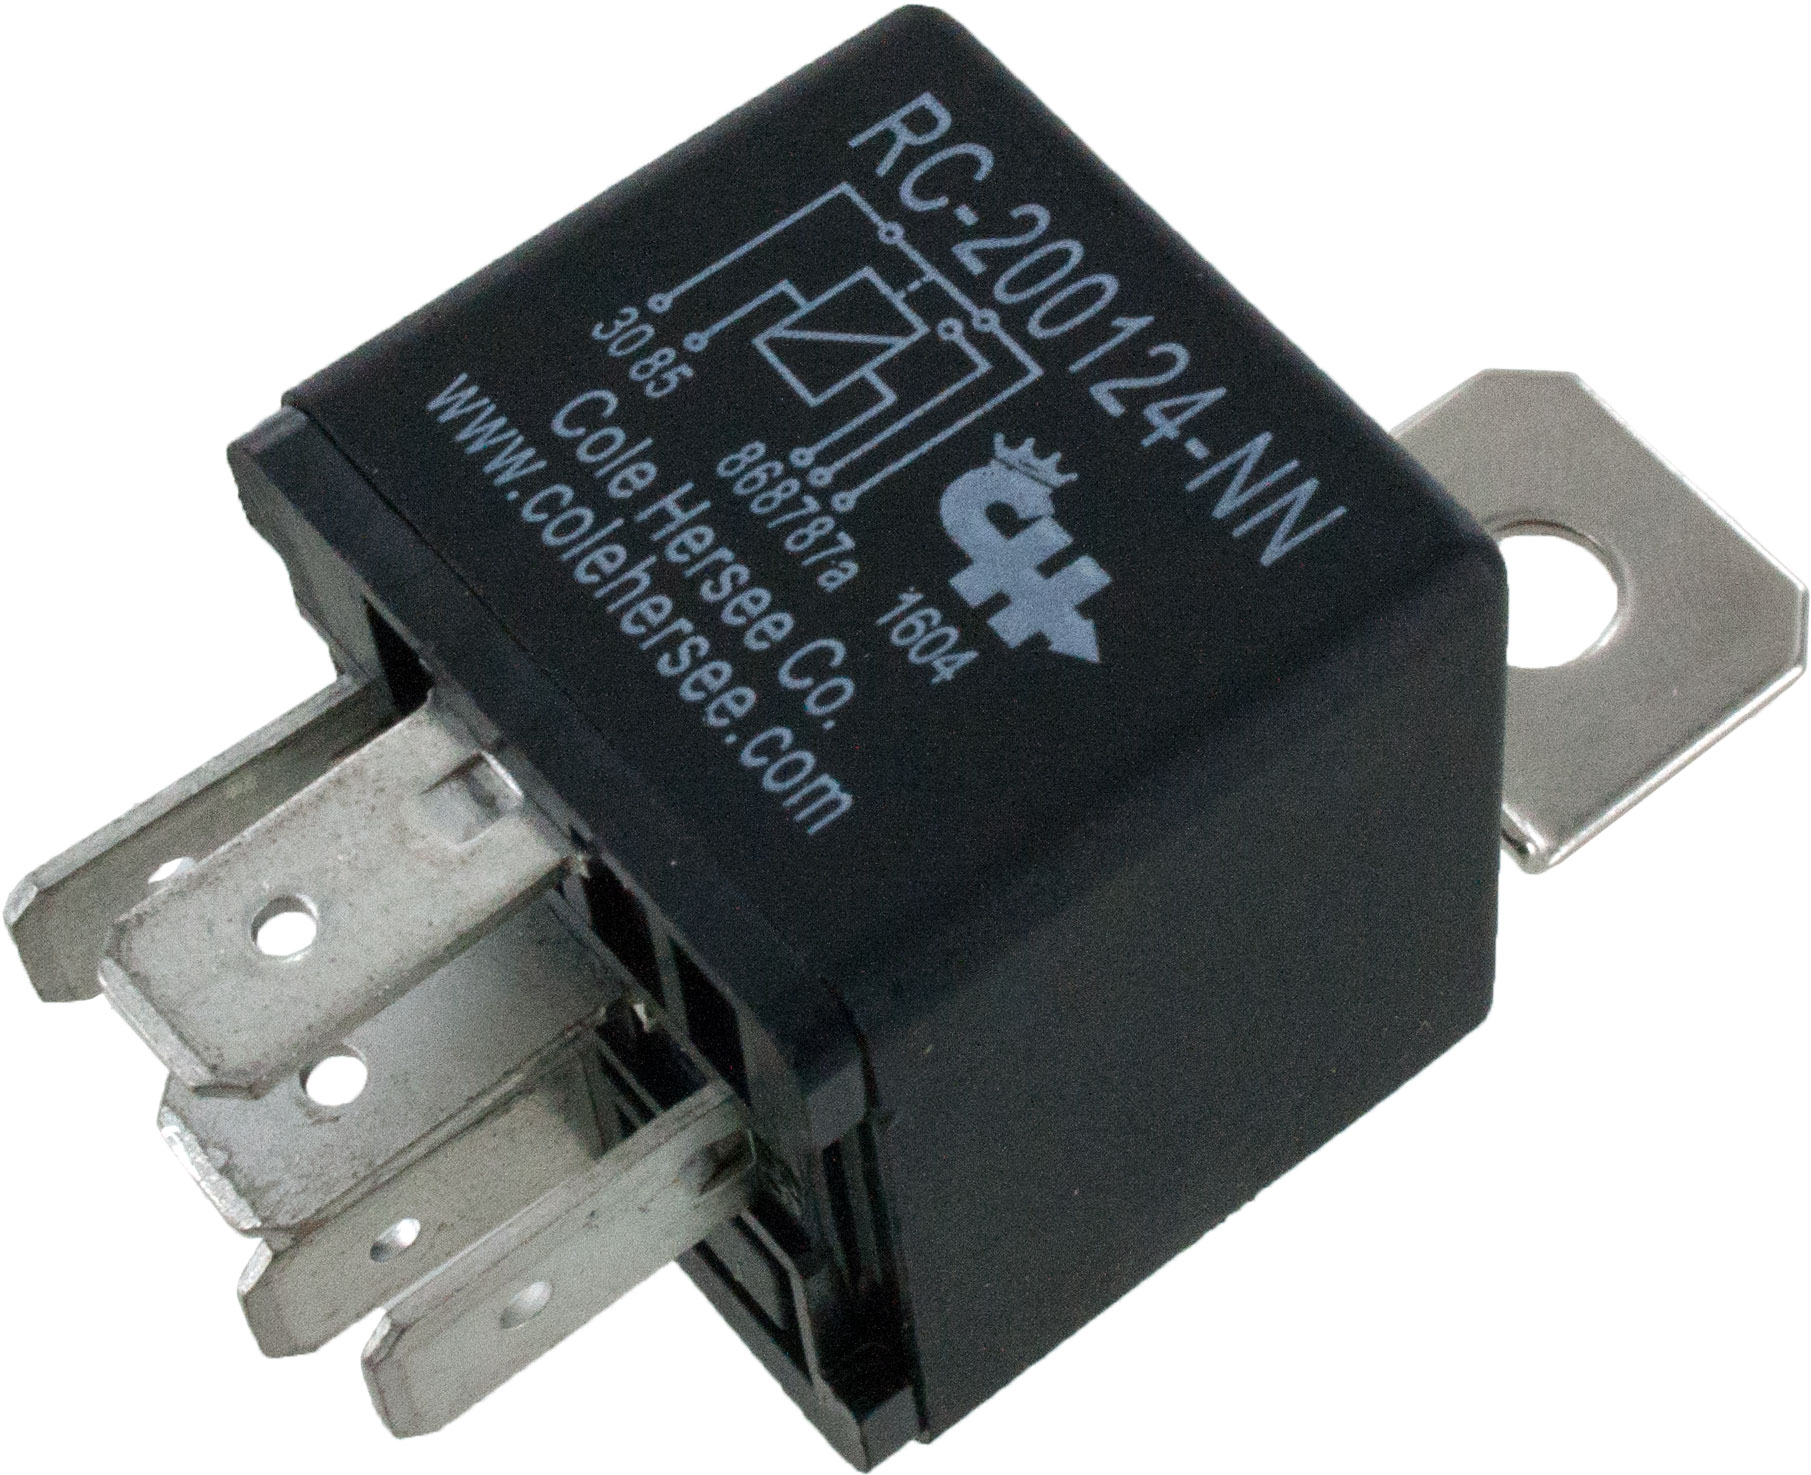 Cole Hersee Relay RC-200124-NN | ElecDirect on bosch relays, hella relays, standard ignition relays, ford relays,